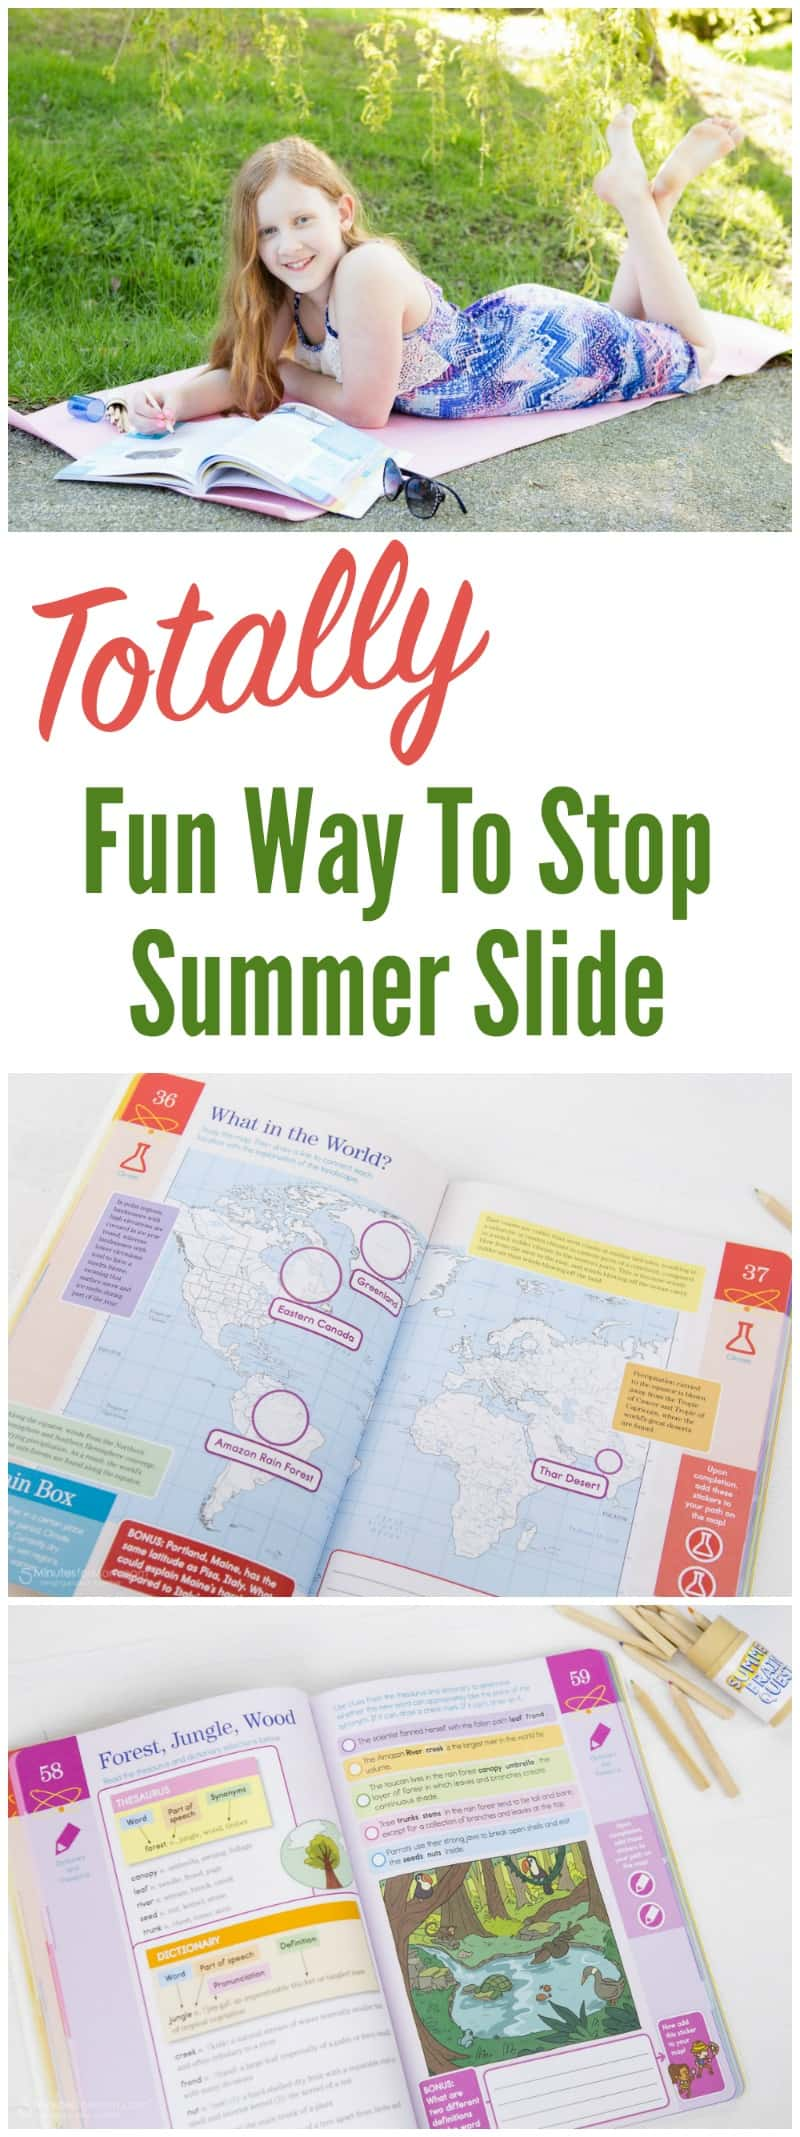 Totally Fun Way To Stop Summer Slide